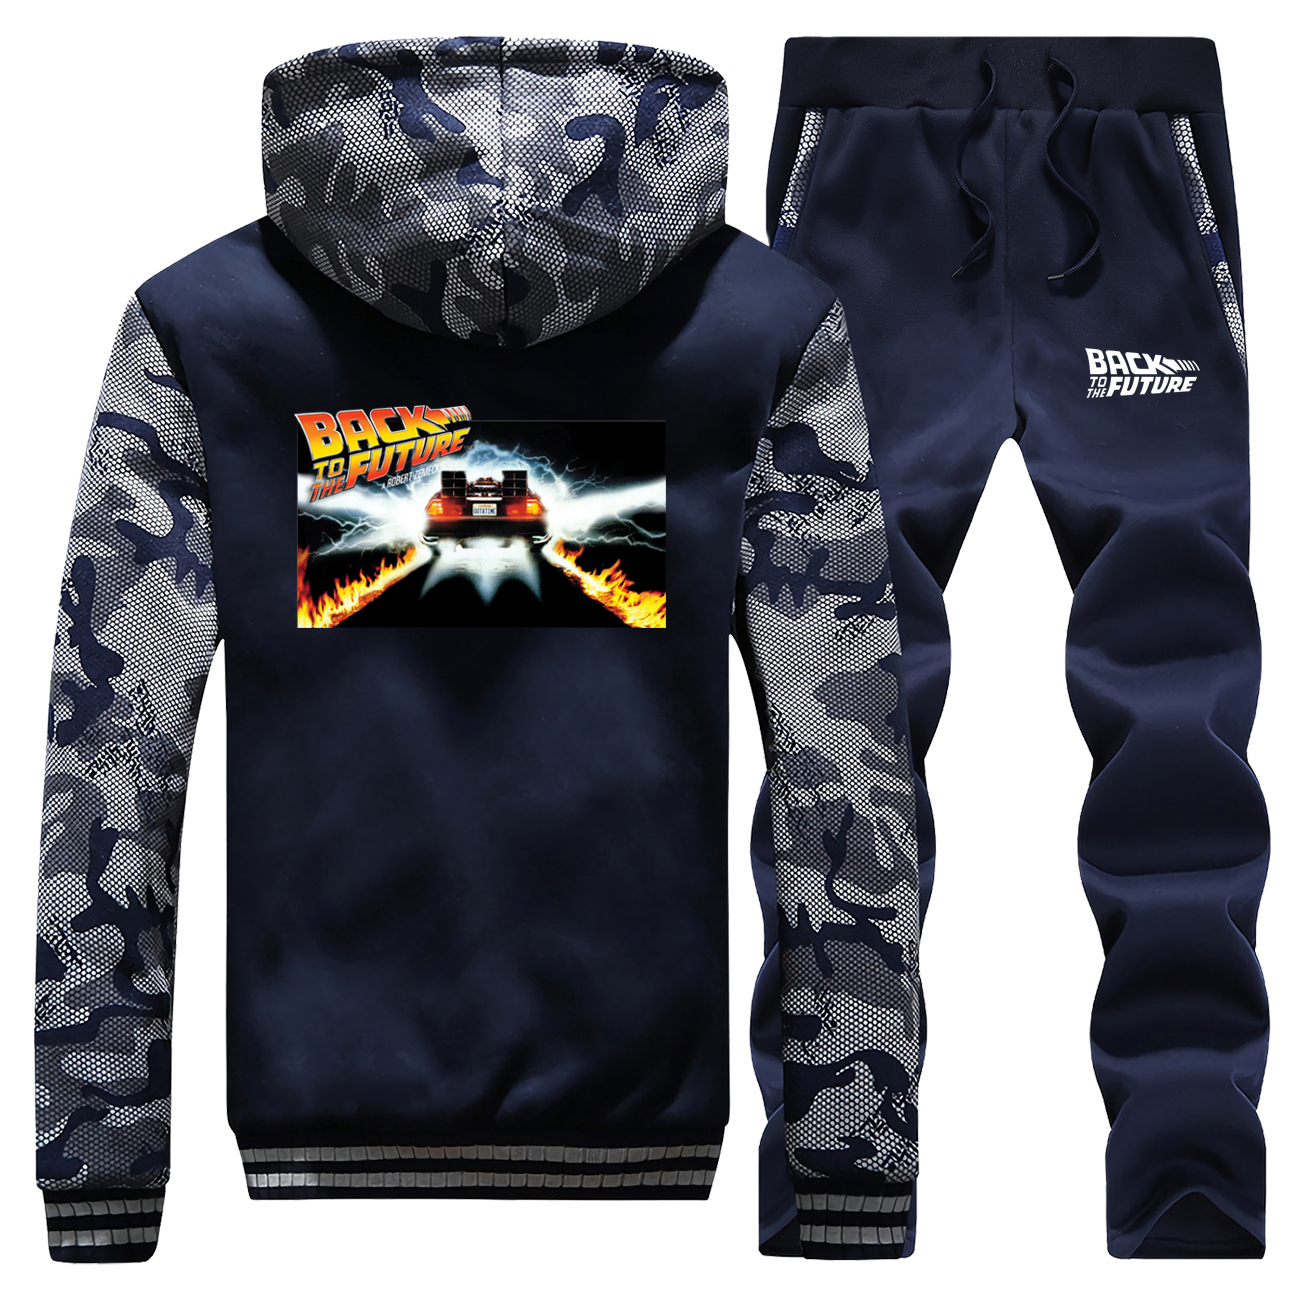 New Winter 2019 Coat Thick Back To The Future Car Mens Hoodies Funny Camouflage Sportswear Suit Warm Jacket+2 Piece Set Pants